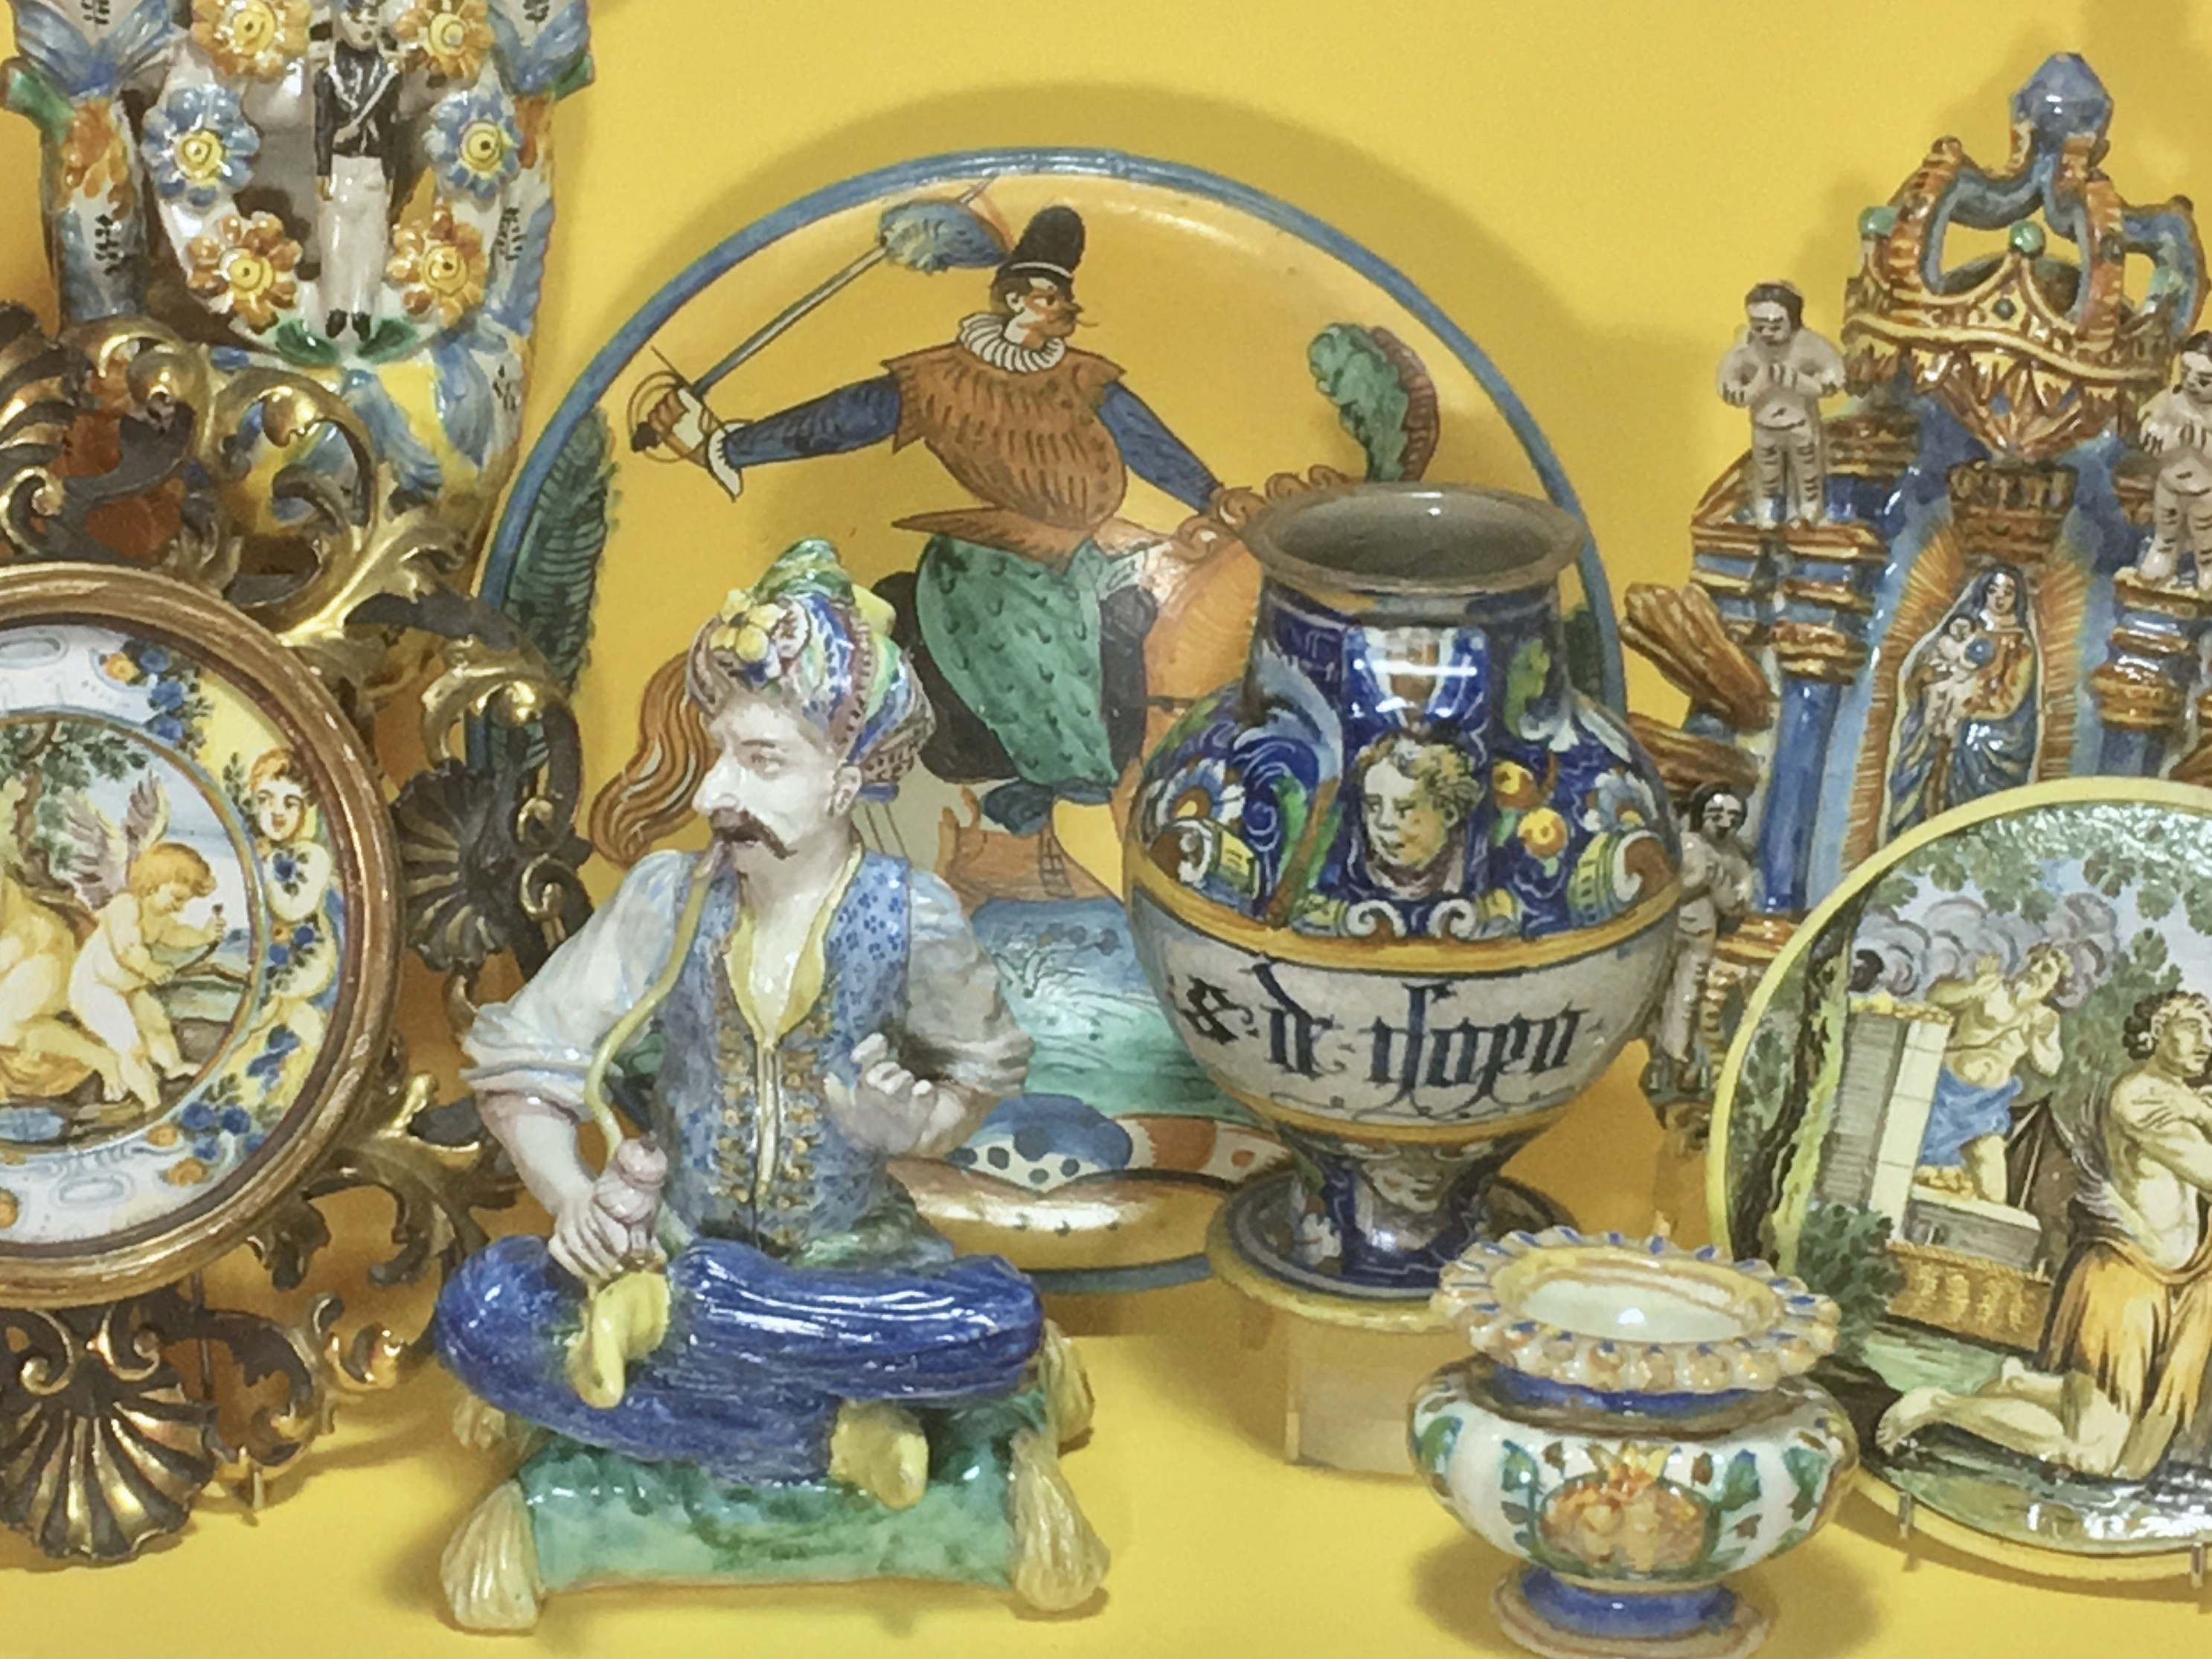 Italian ceramics from the 16th to the 19th century